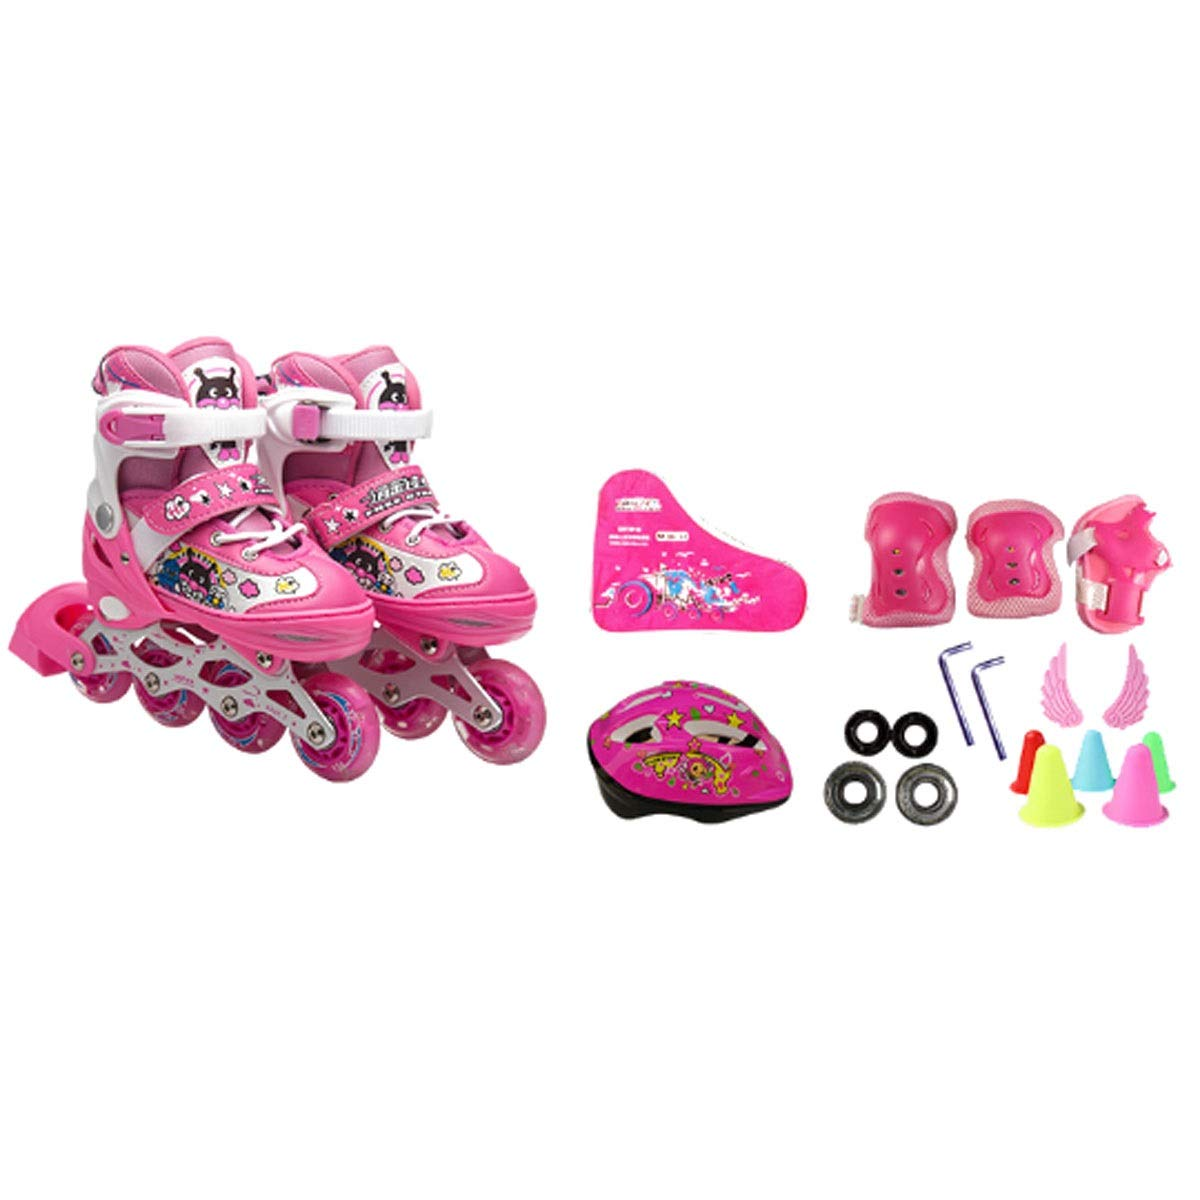 Hengxiang Fitness Inline Skates, Kid's Outdoor Skates, Four Wheels Adjustable Size,Thick Double Aluminum Alloy Bracket, Eight Wheels Of Full Flash, Excellent Gift For 3 Years Old To Teenagers, Pink Wo